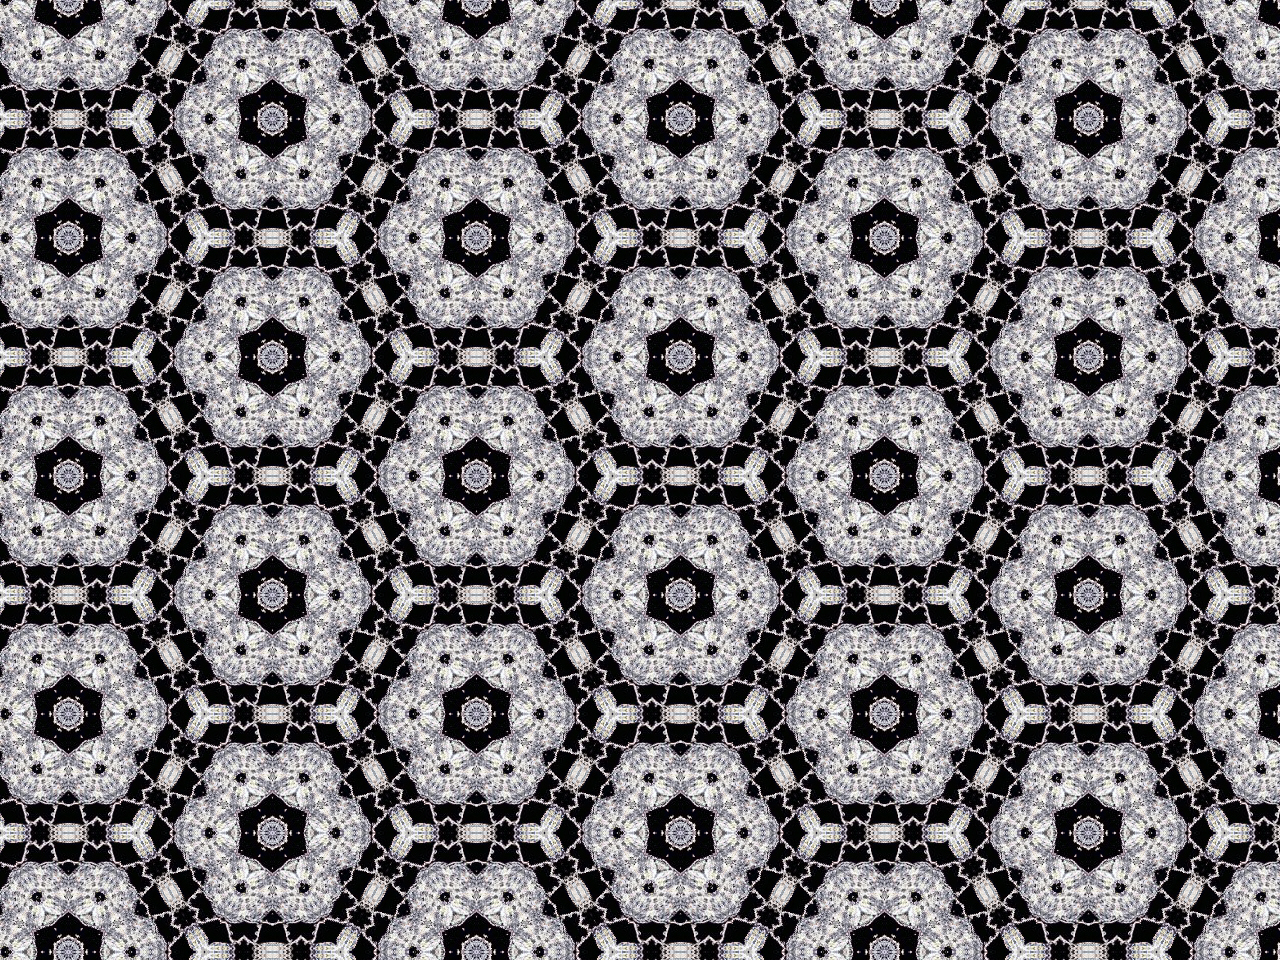 Lace clipart lace fabric. Artbyjean images of white